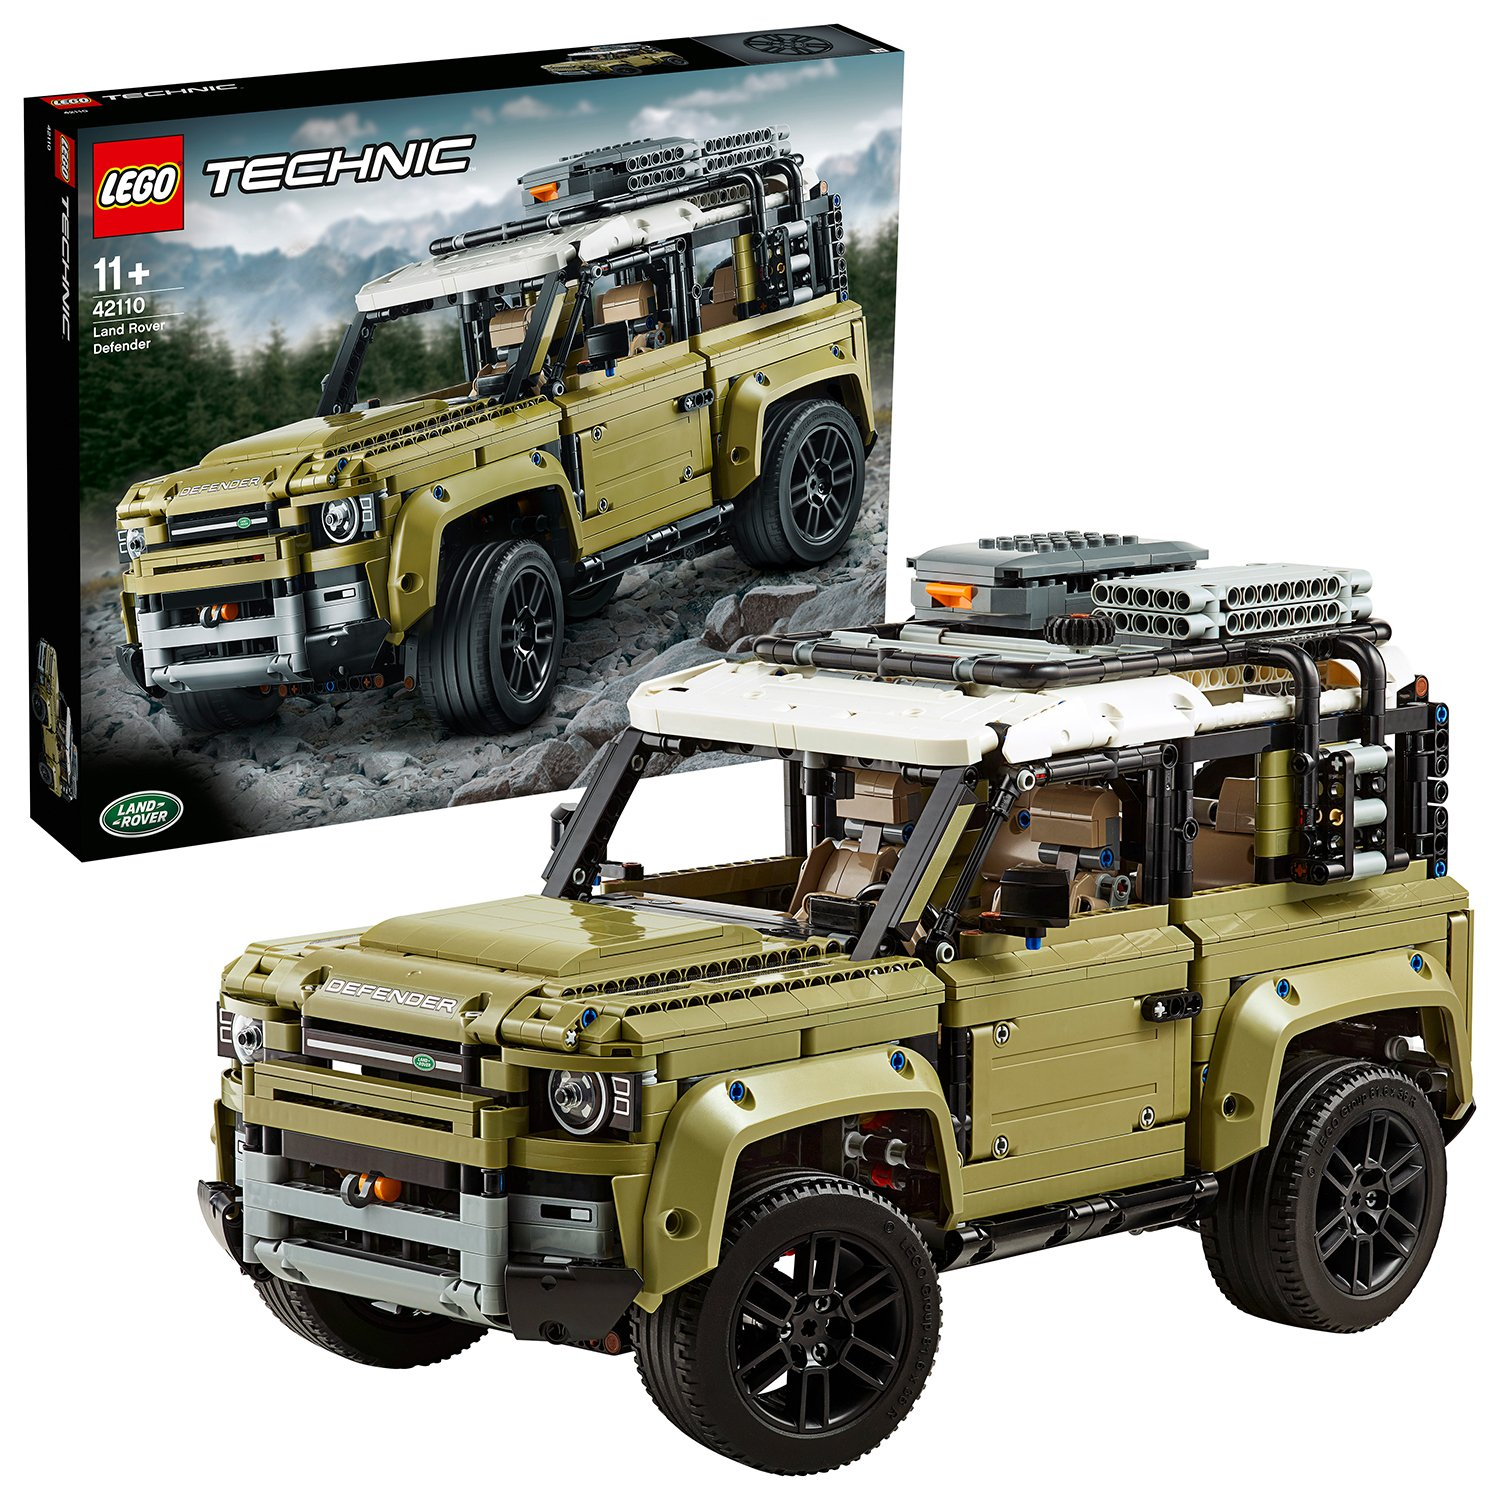 Image of LEGO Technic Land Rover Defender Collector's Model Car 42110